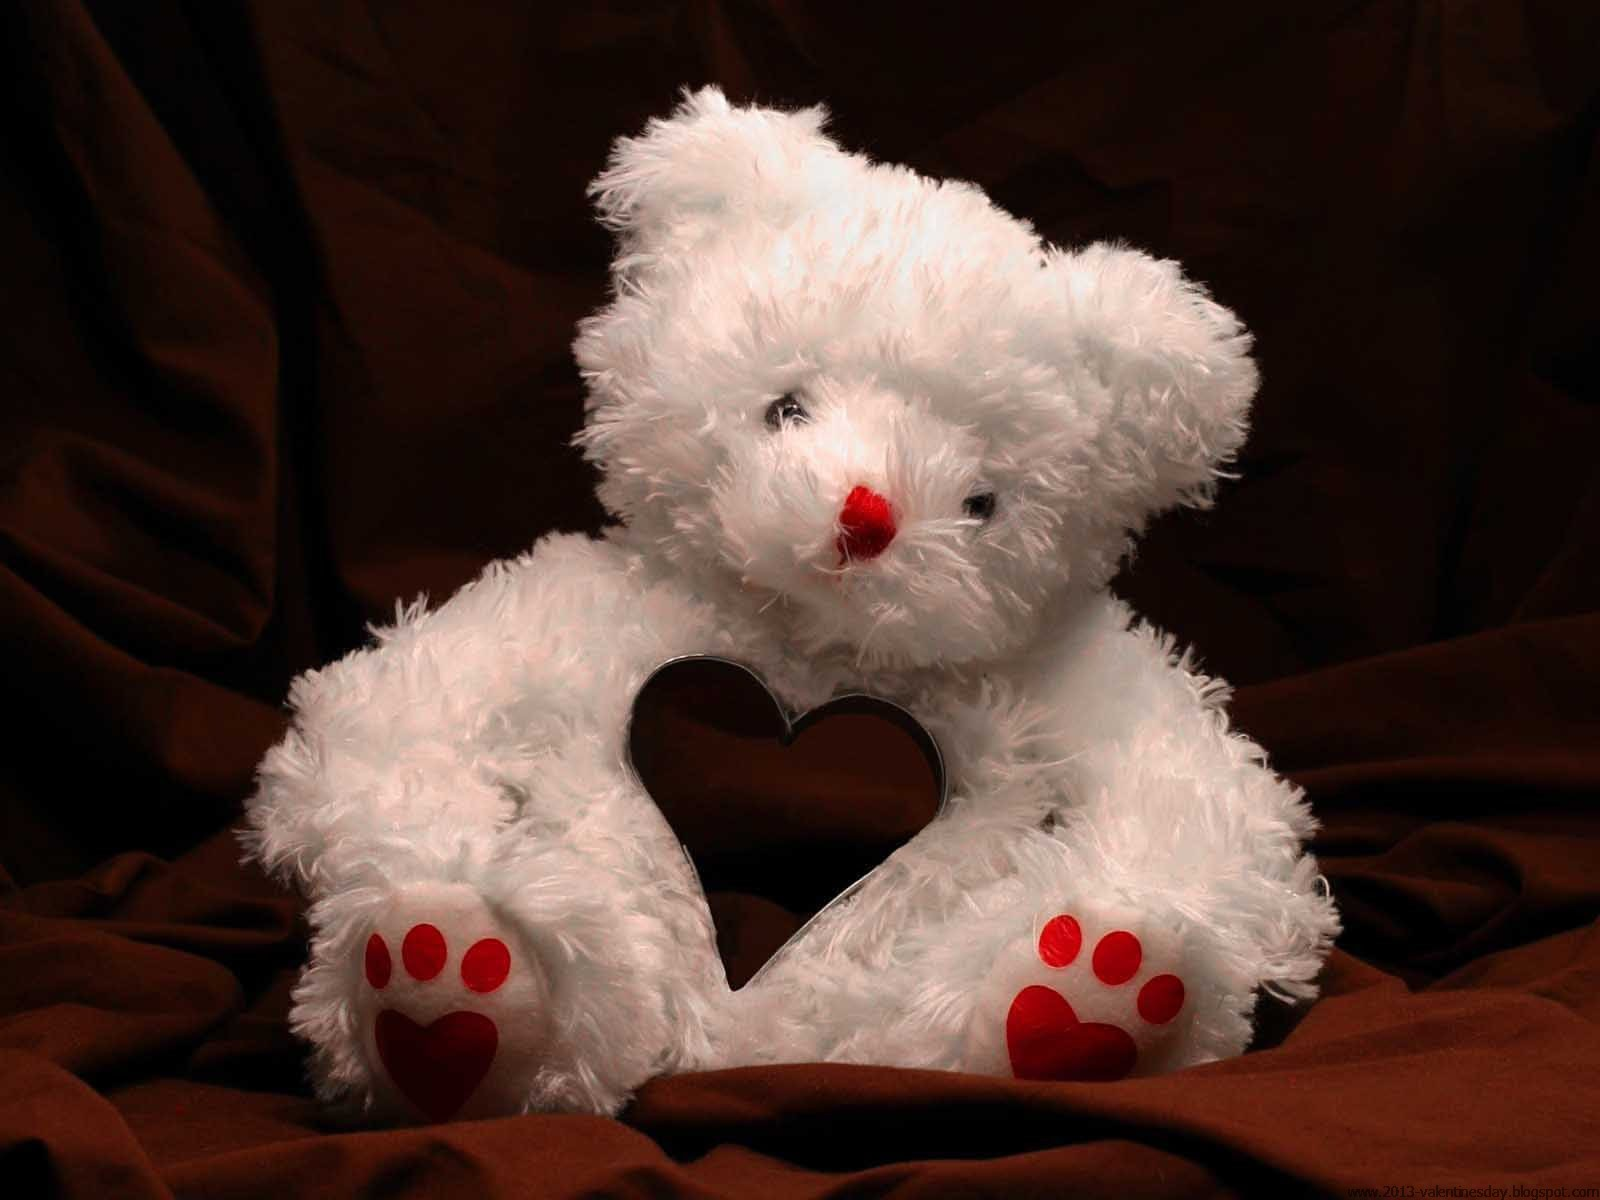 Happy Teddy Day 2013- Teddy Bear HD Wallpapers And Quotes